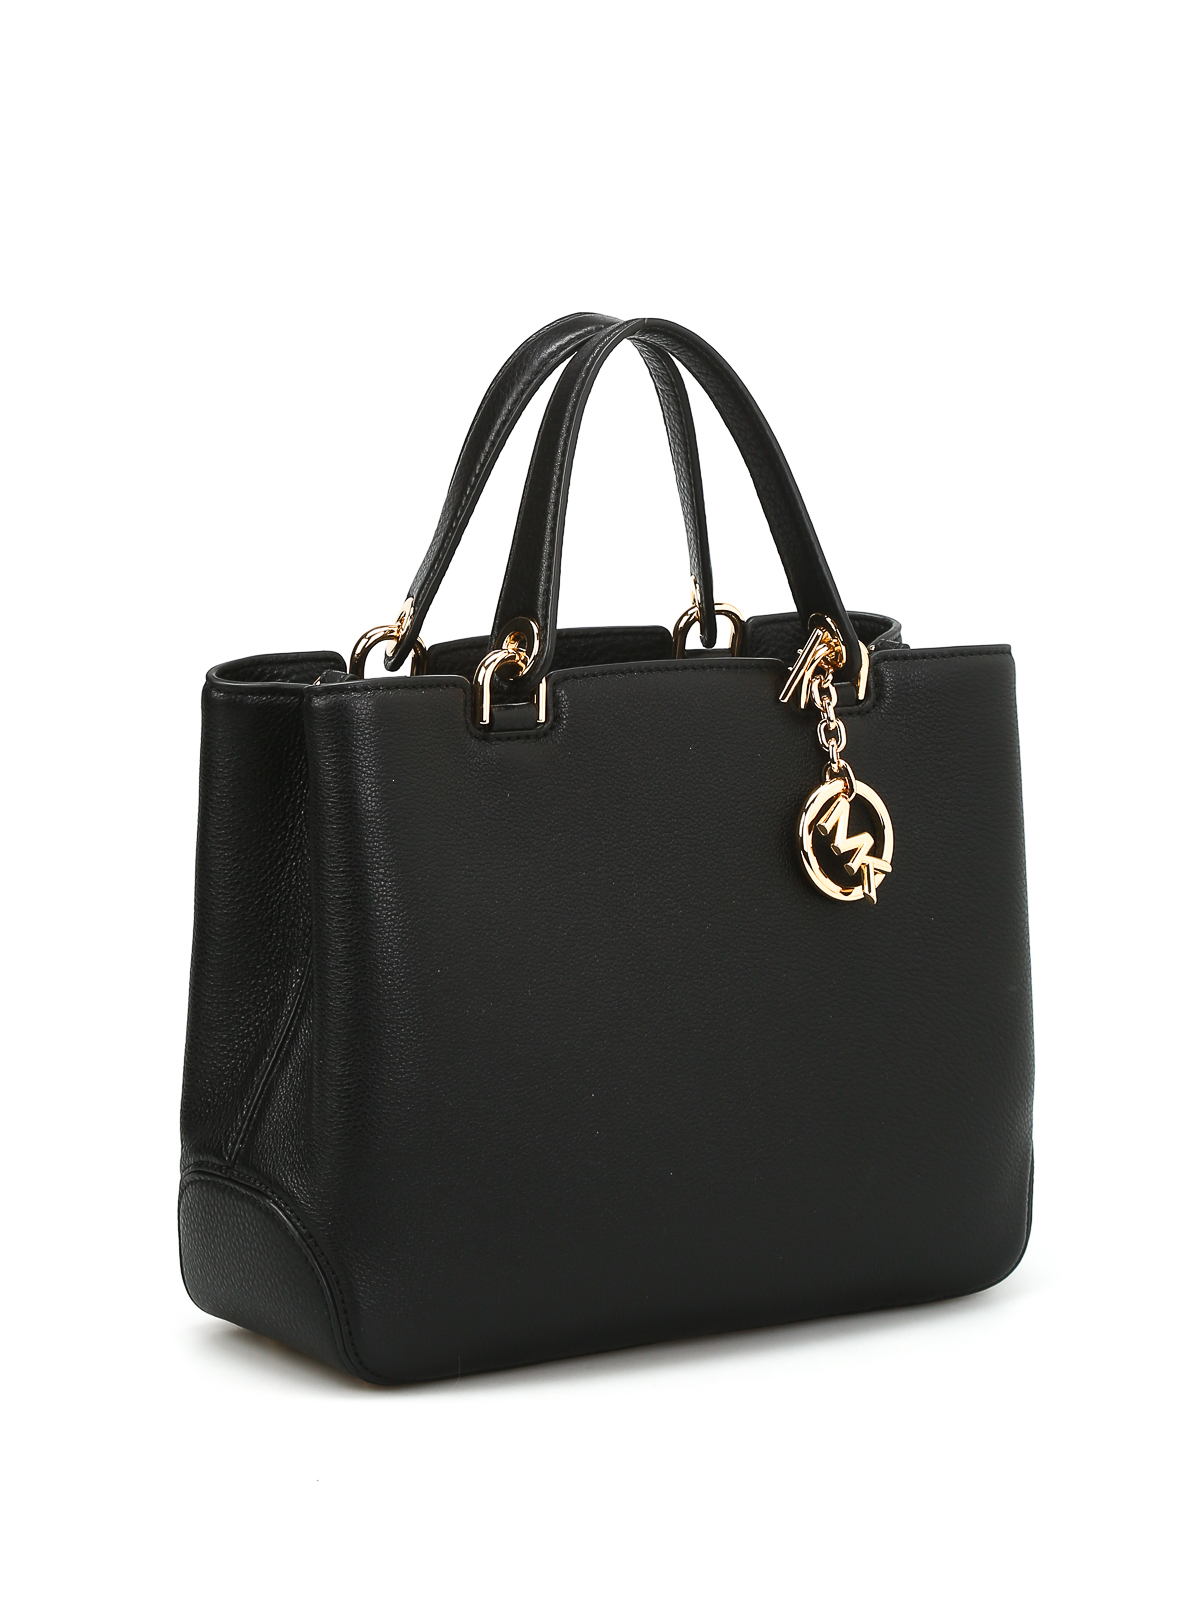 4687af4292e5 MICHAEL KORS  totes bags online - Anabelle medium leather tote